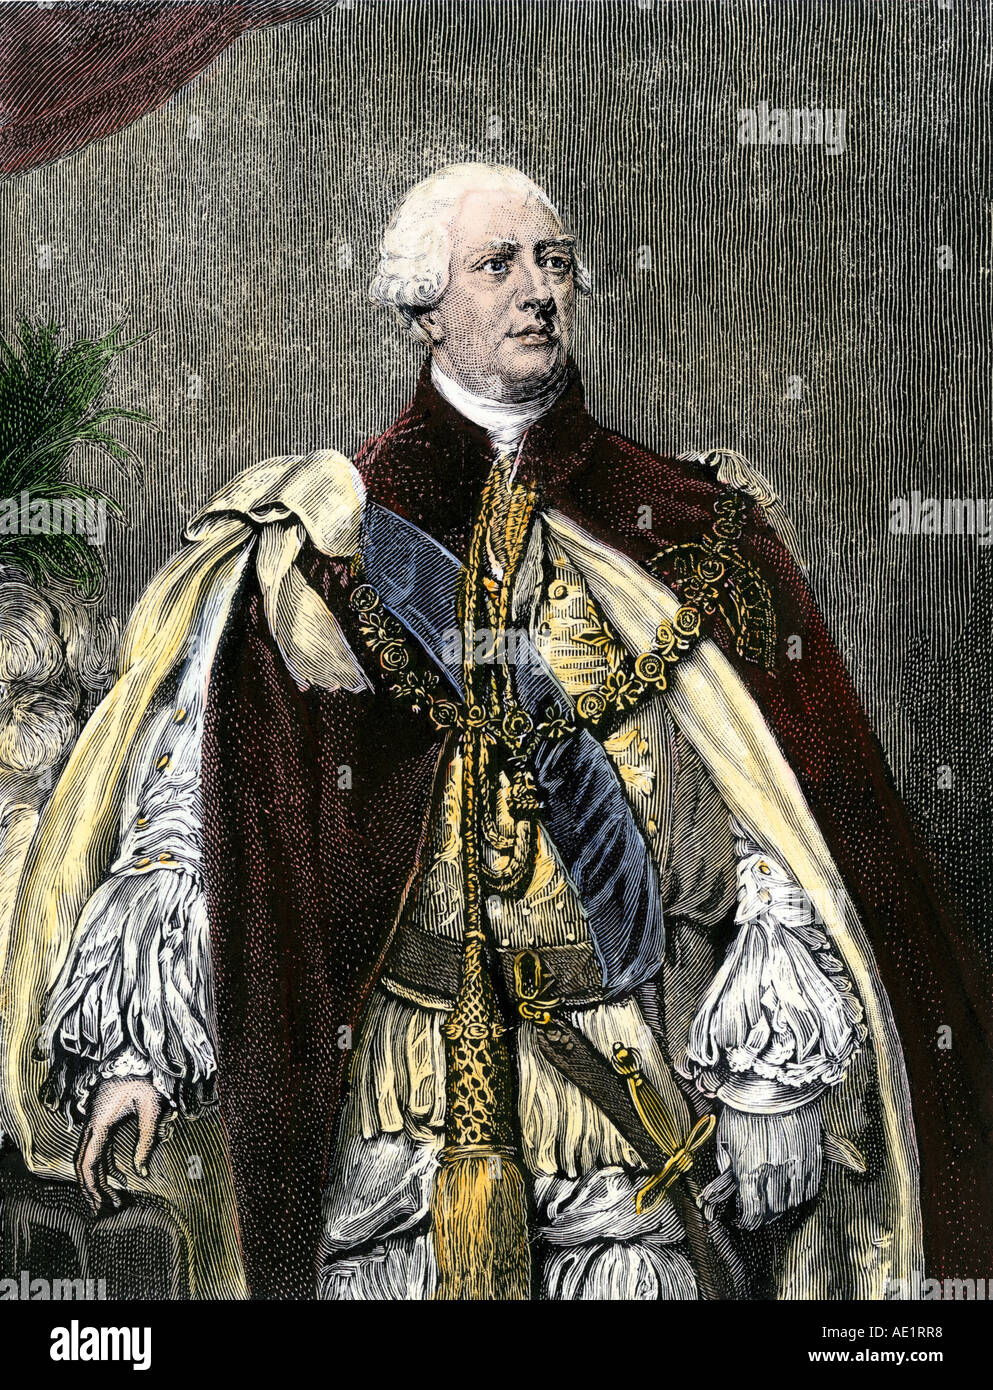 King George III in his royal attire. Hand-colored woodcut - Stock Image